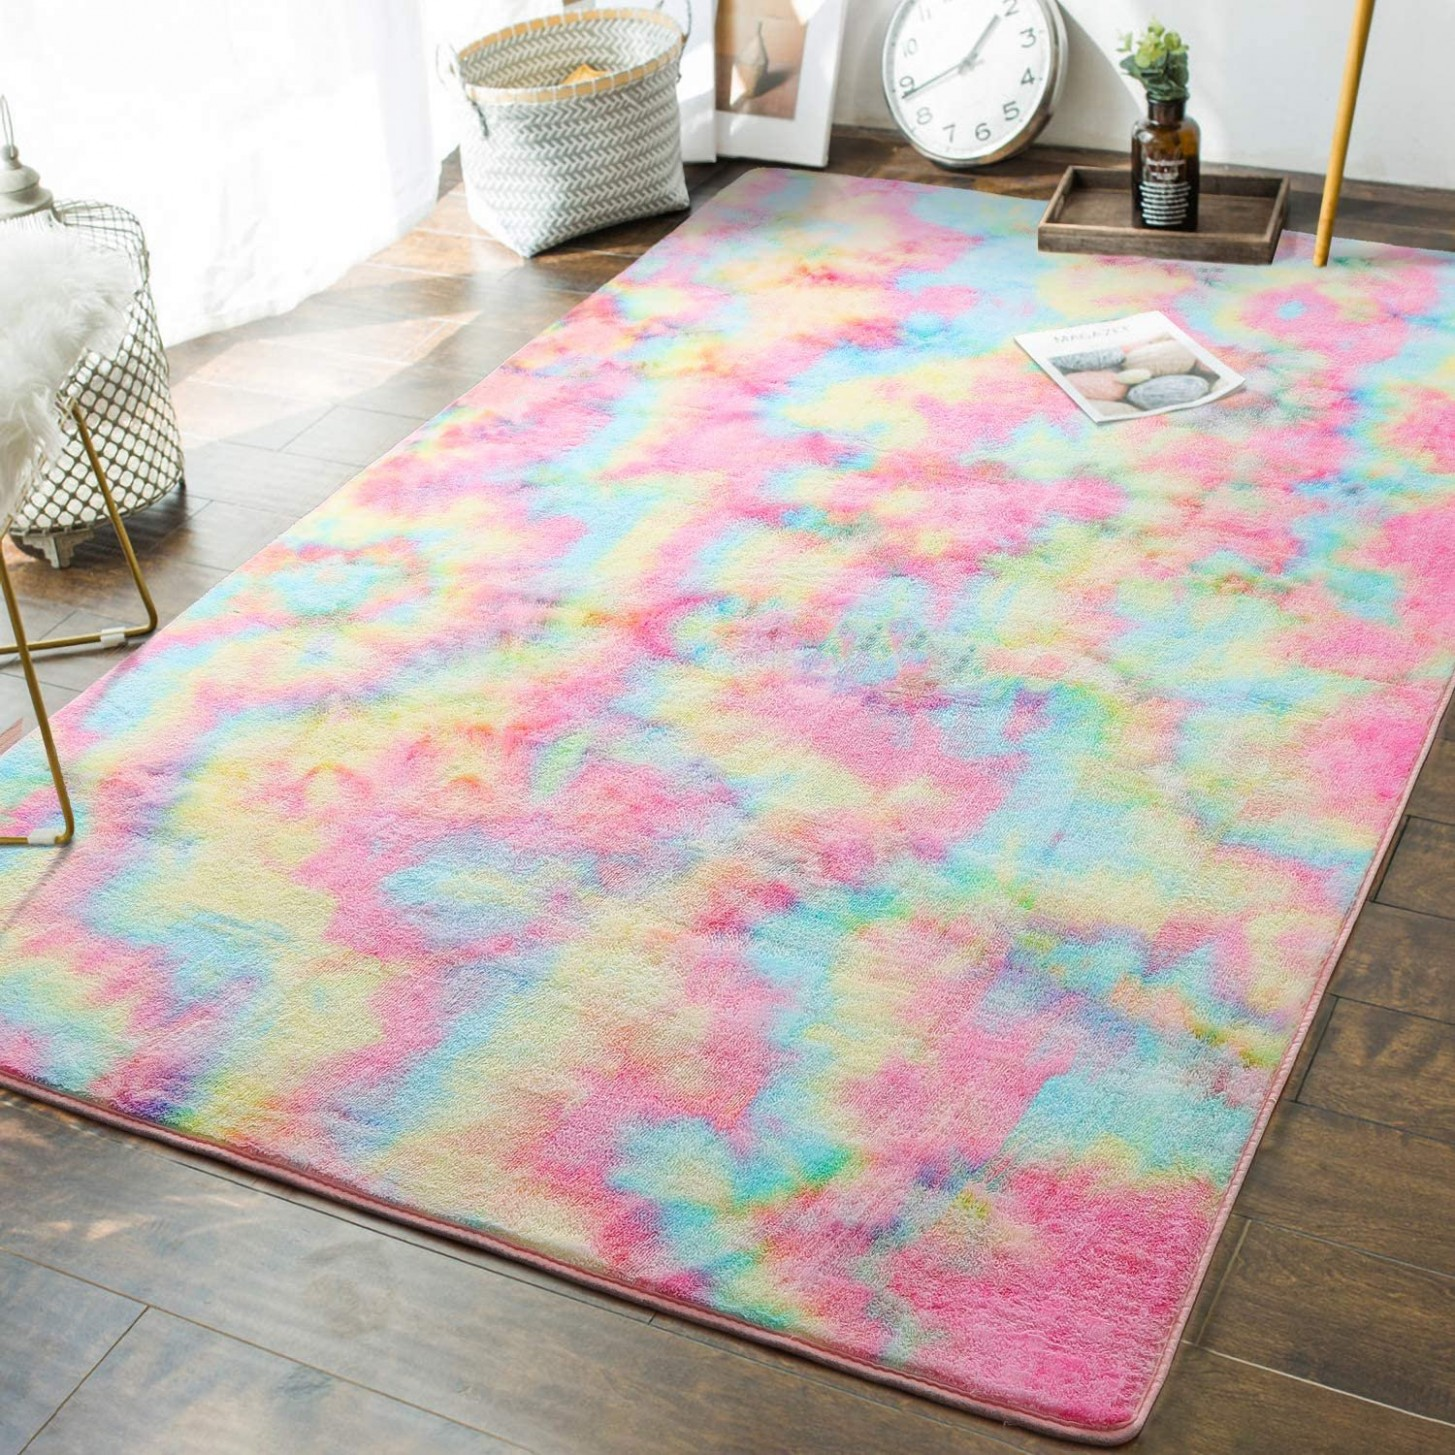 Soft Girls Room Rugs - 8 x 8 Feet Fluffy Rainbow Area Rug for Kids Baby  Room Bedroom Nursery Home Decor Large Floor Carpet by , Multi - Baby Room Carpet